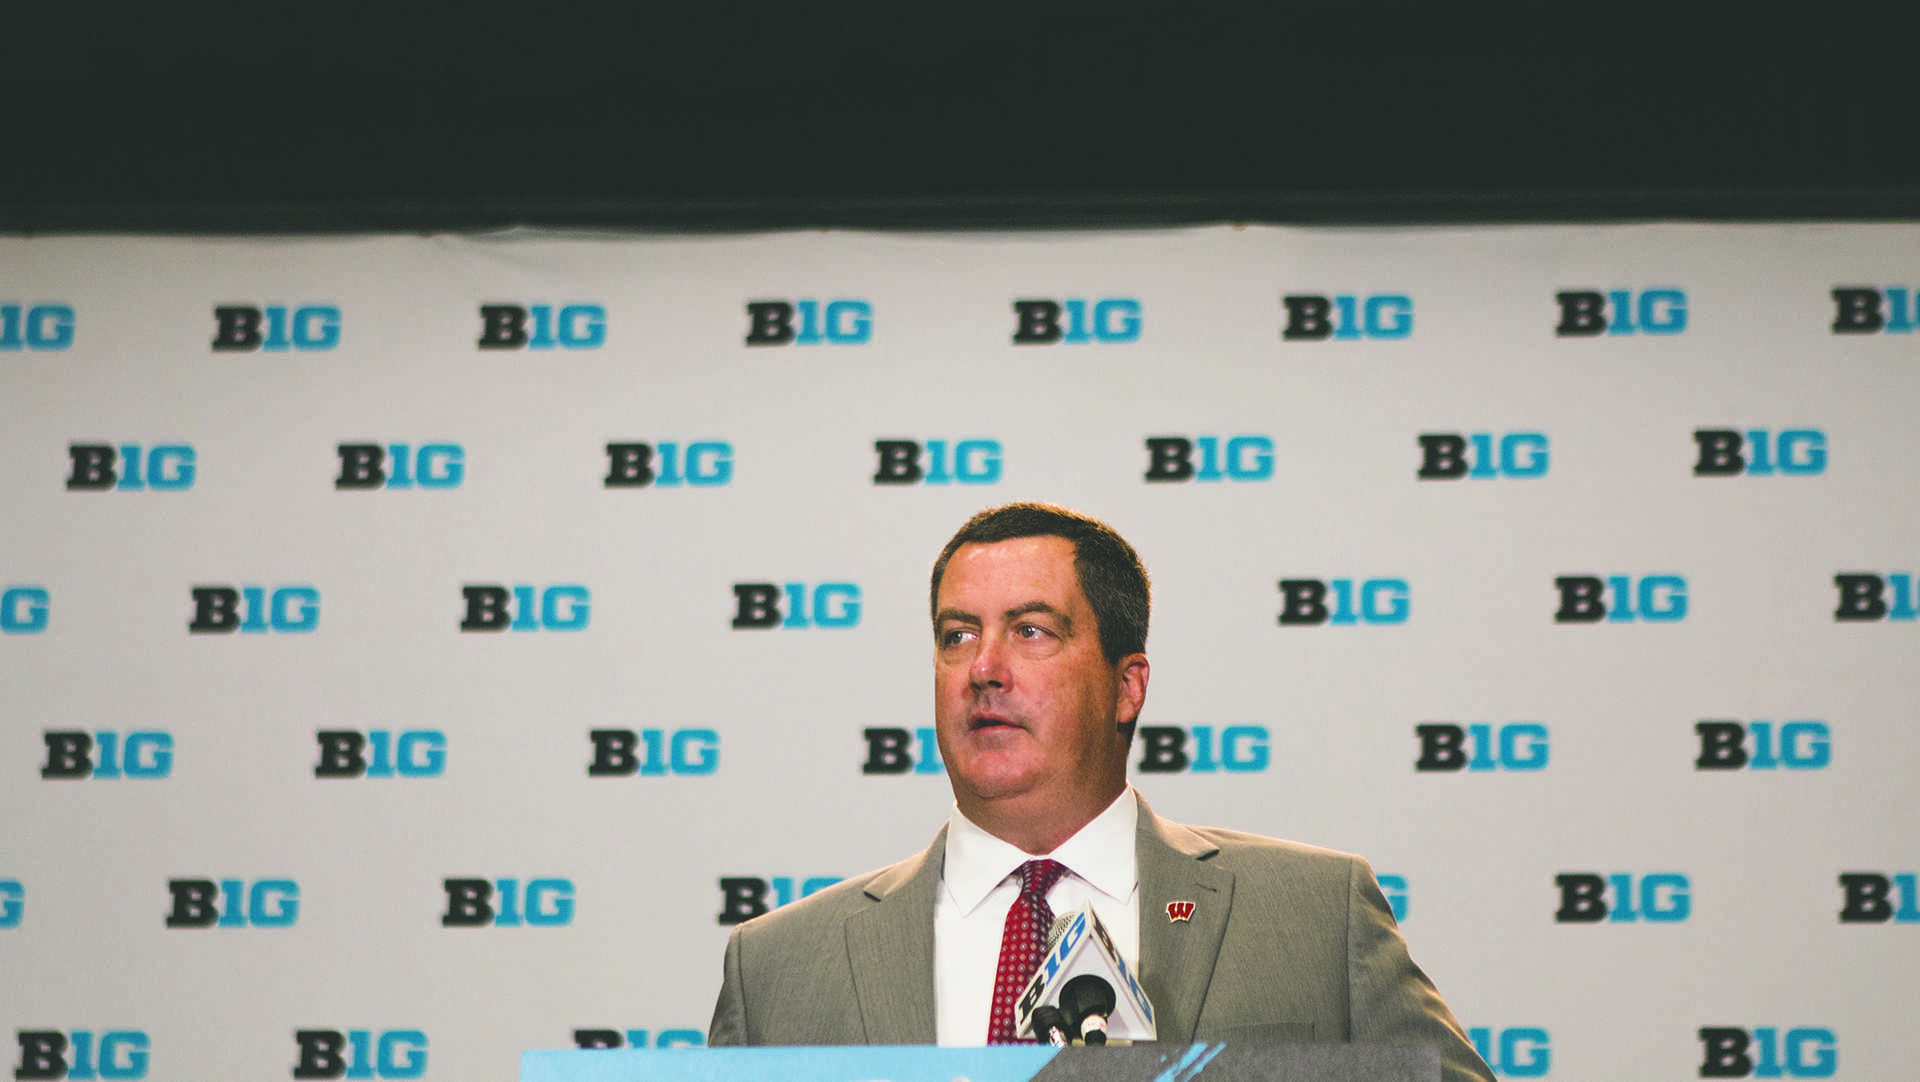 Wisconsin head coach Paul Chryst speaks during the Big Ten Media Days at McCormick Place Convention Center in Chicago on Monday, July 24, 2017. (Joseph Cress/The Daily Iowan)